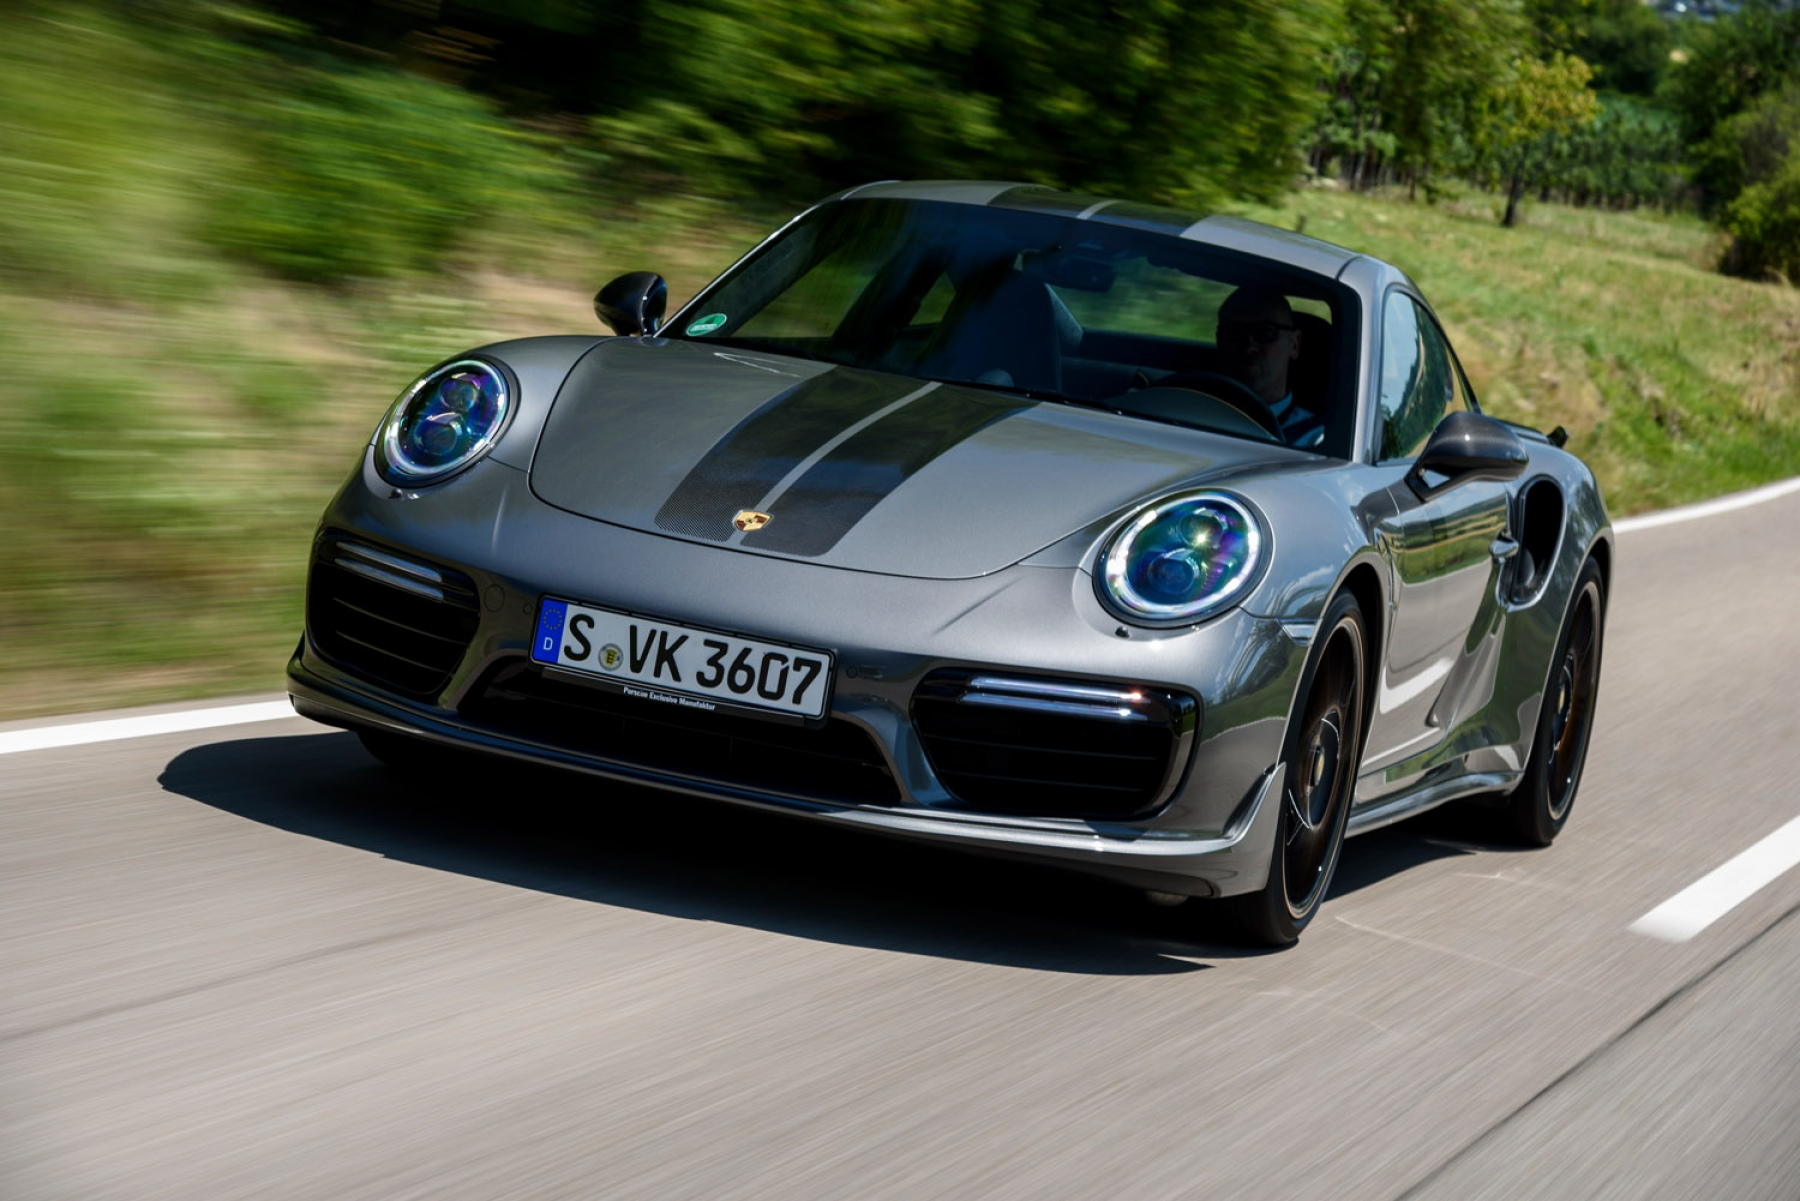 911 Turbo S Exclusive Series Agate Grey Metallic Porsche